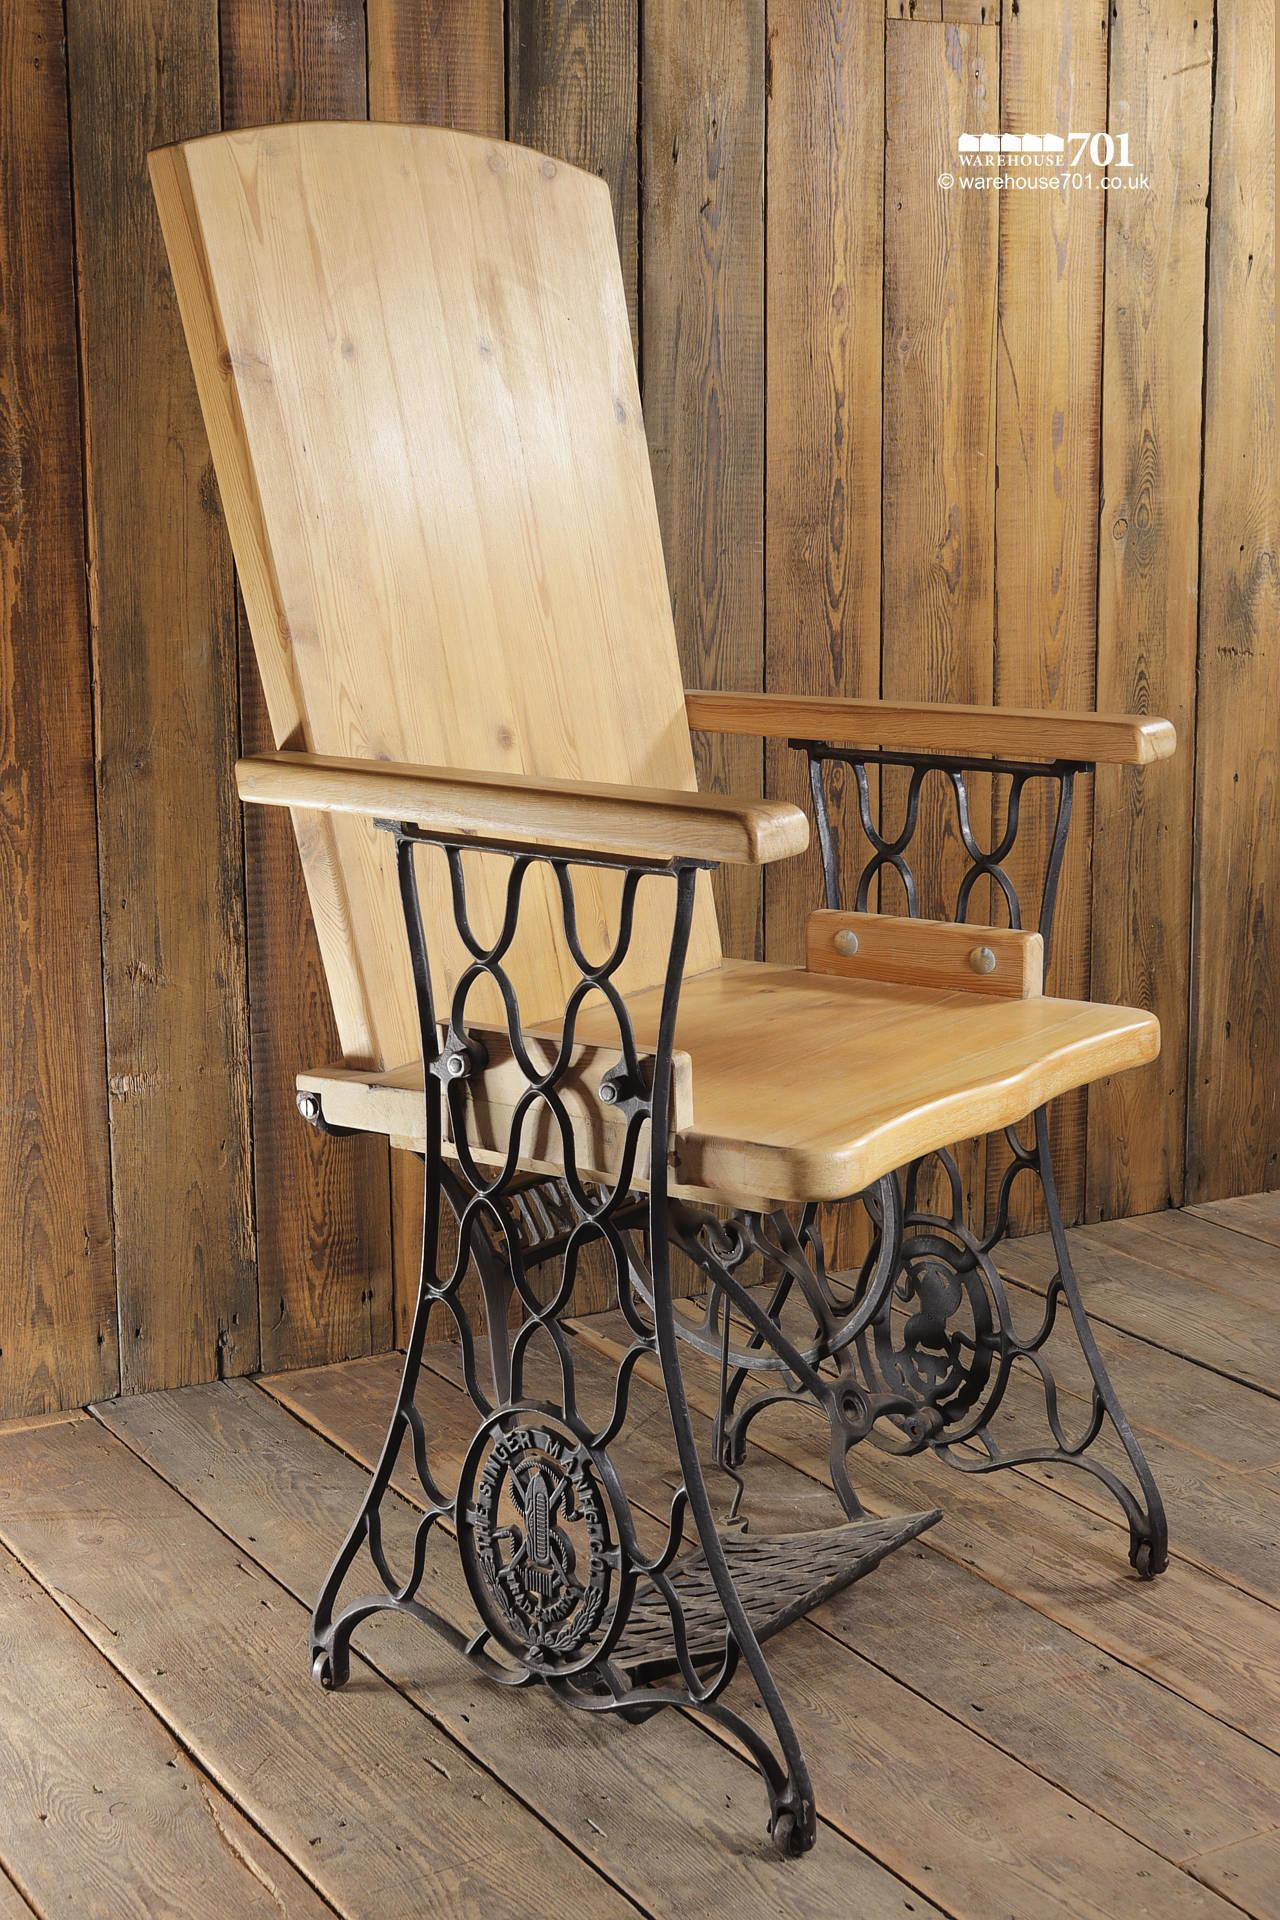 Handmade Chair with Authentic Singer Sewing Machine Treadle Frame #9